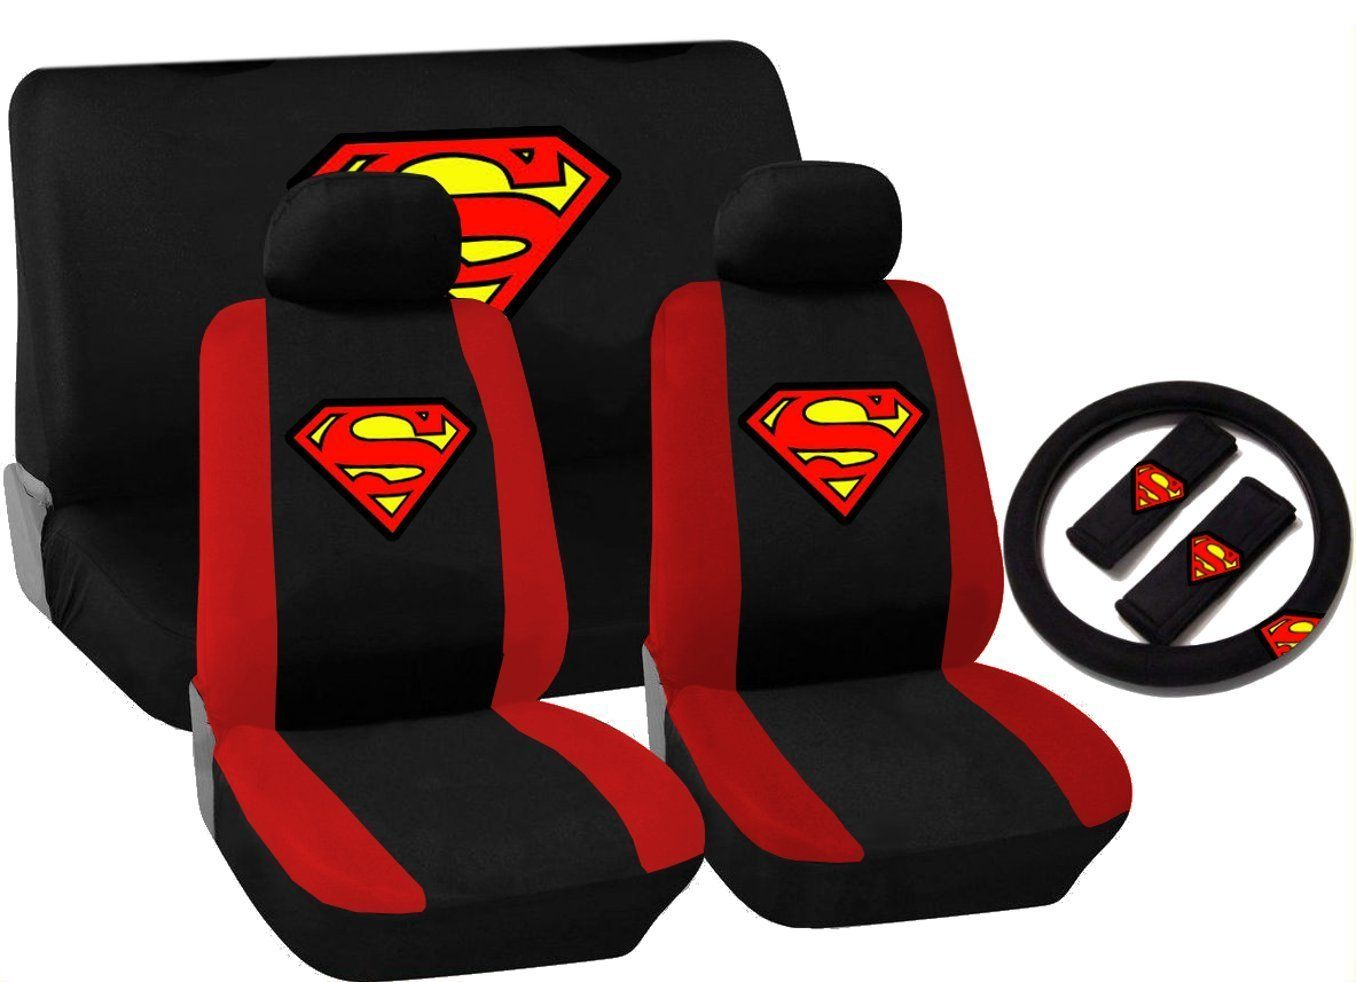 Superman Car Accessories Seat Covers Bench Cover Shoulder Pads Steering Wheel RED